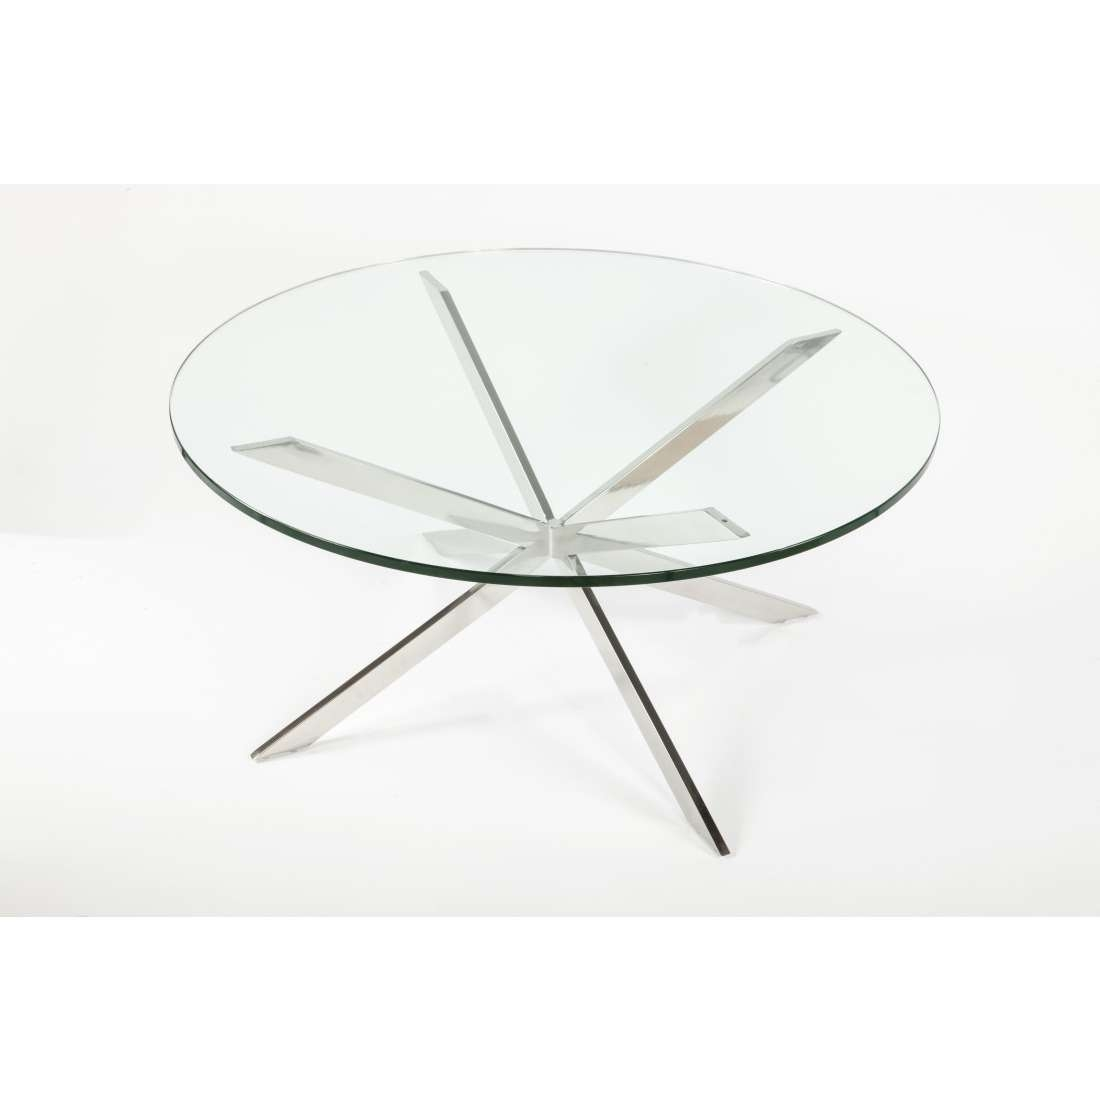 2017 Chrome Coffee Table Bases With Mid Century Modern Reproduction Chrome Star X Base (View 3 of 20)